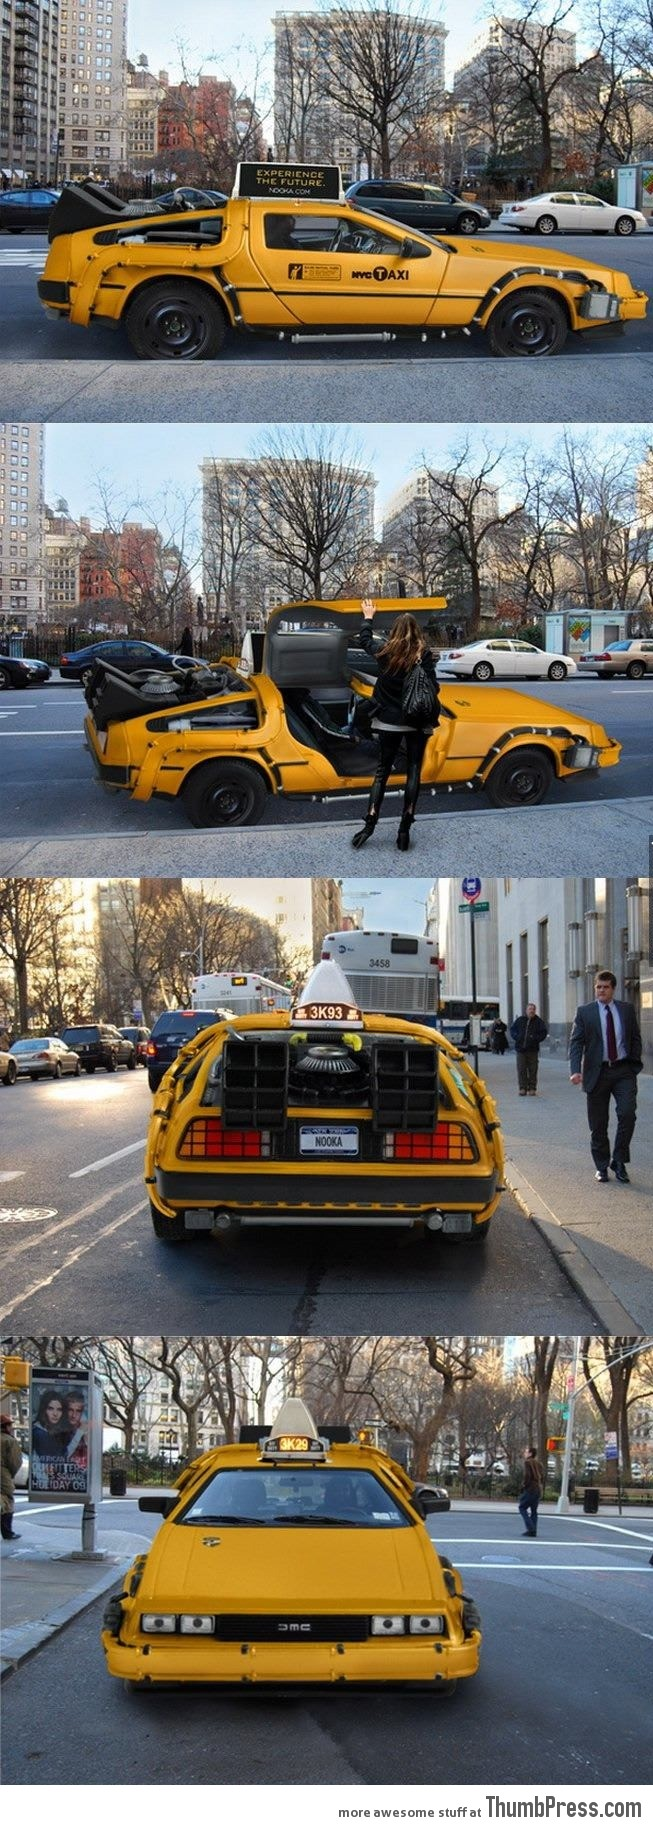 I want to get a ride on this taxi